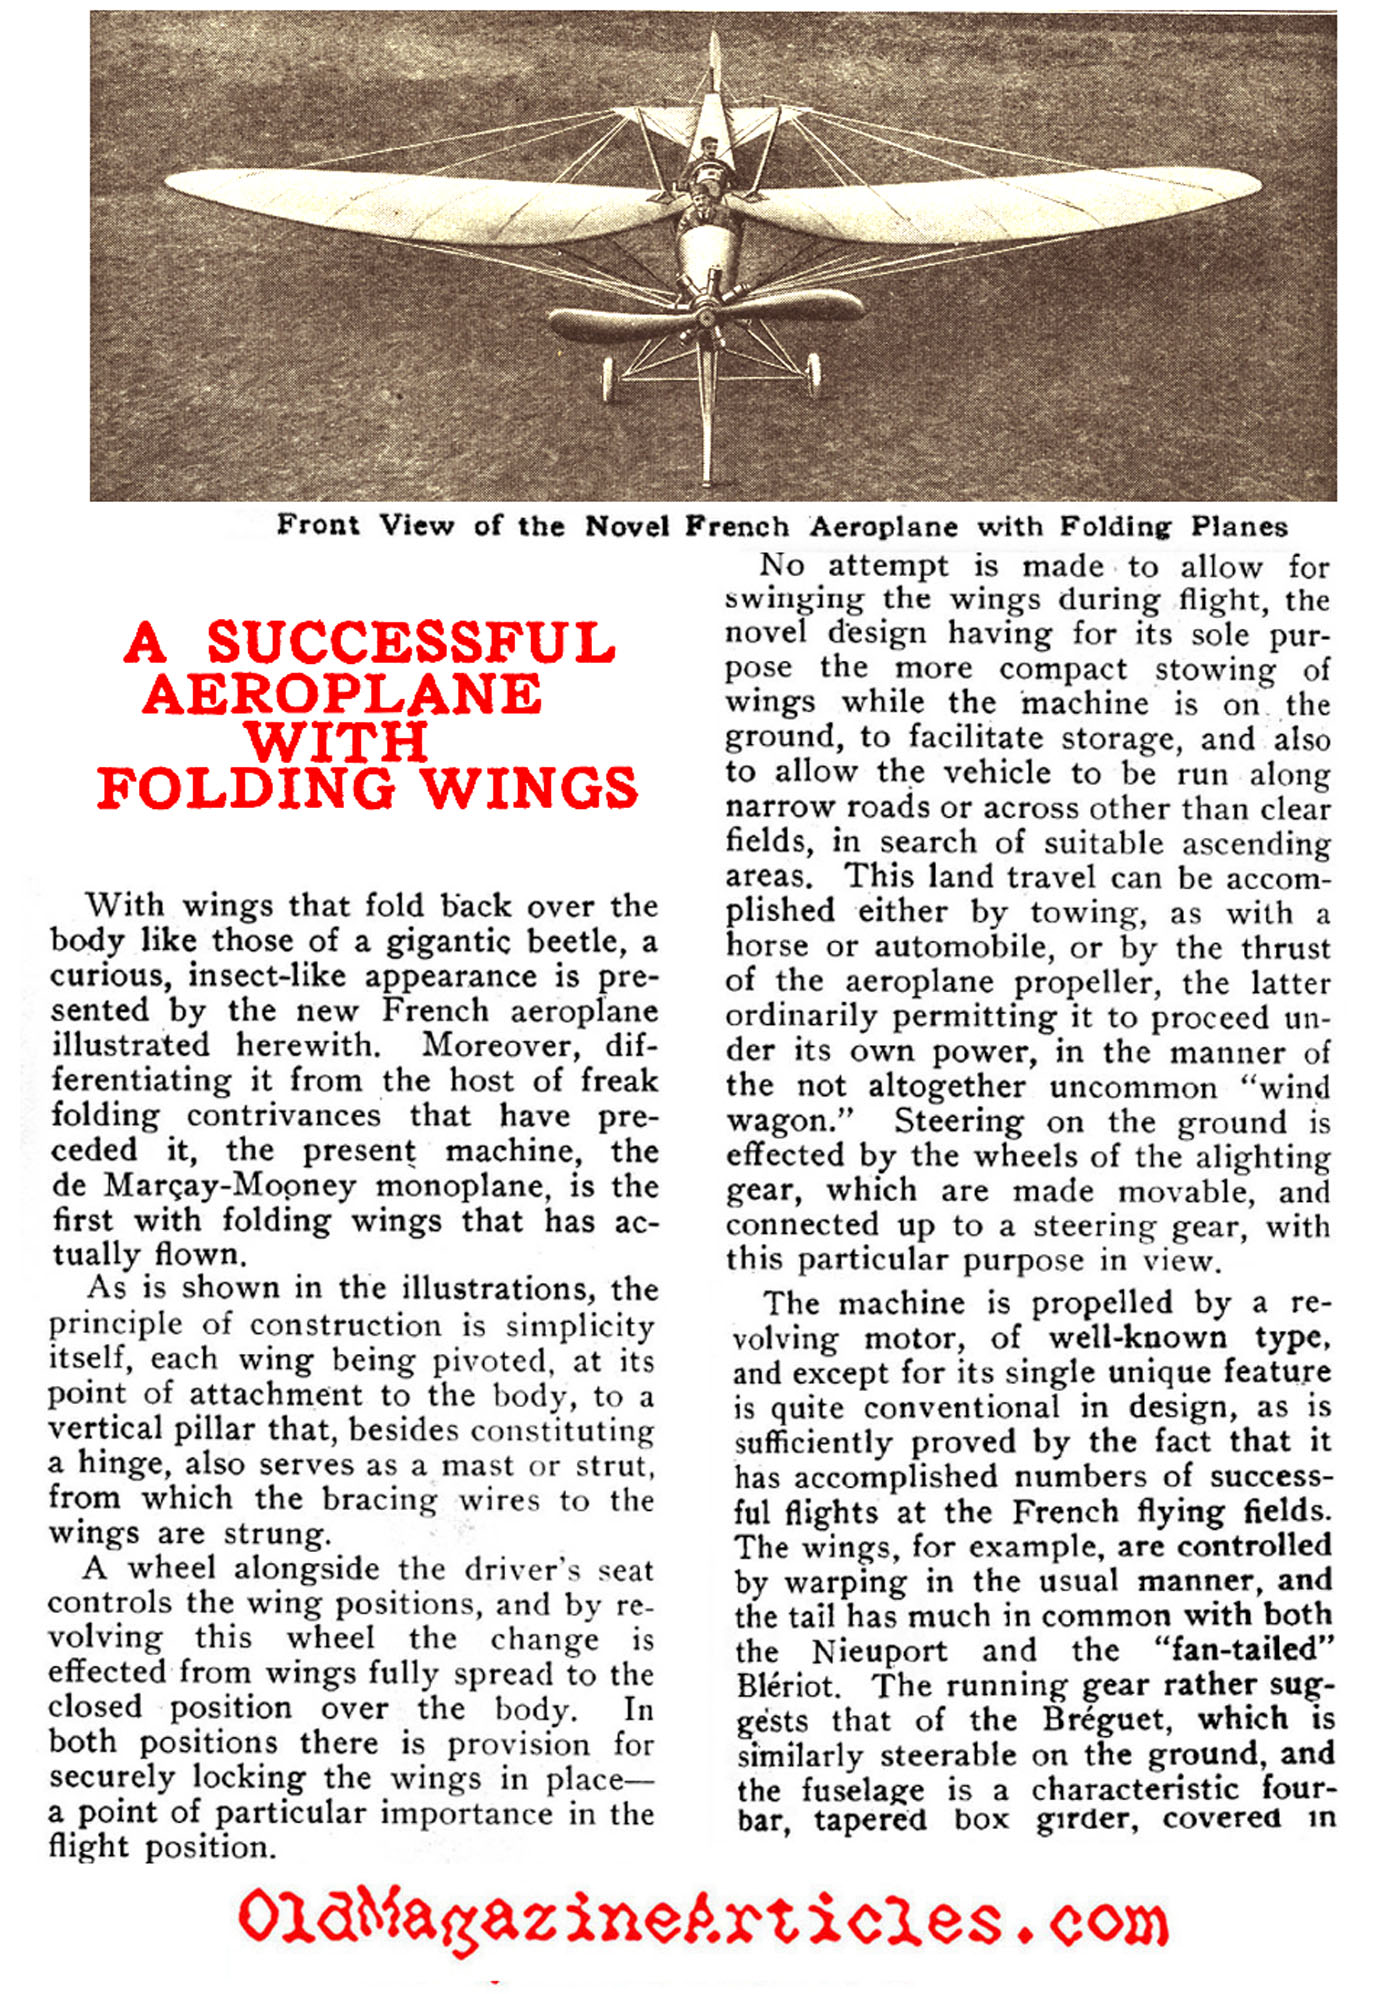 The First Folding Wing Monoplane (Popular Mechanics, 1912)